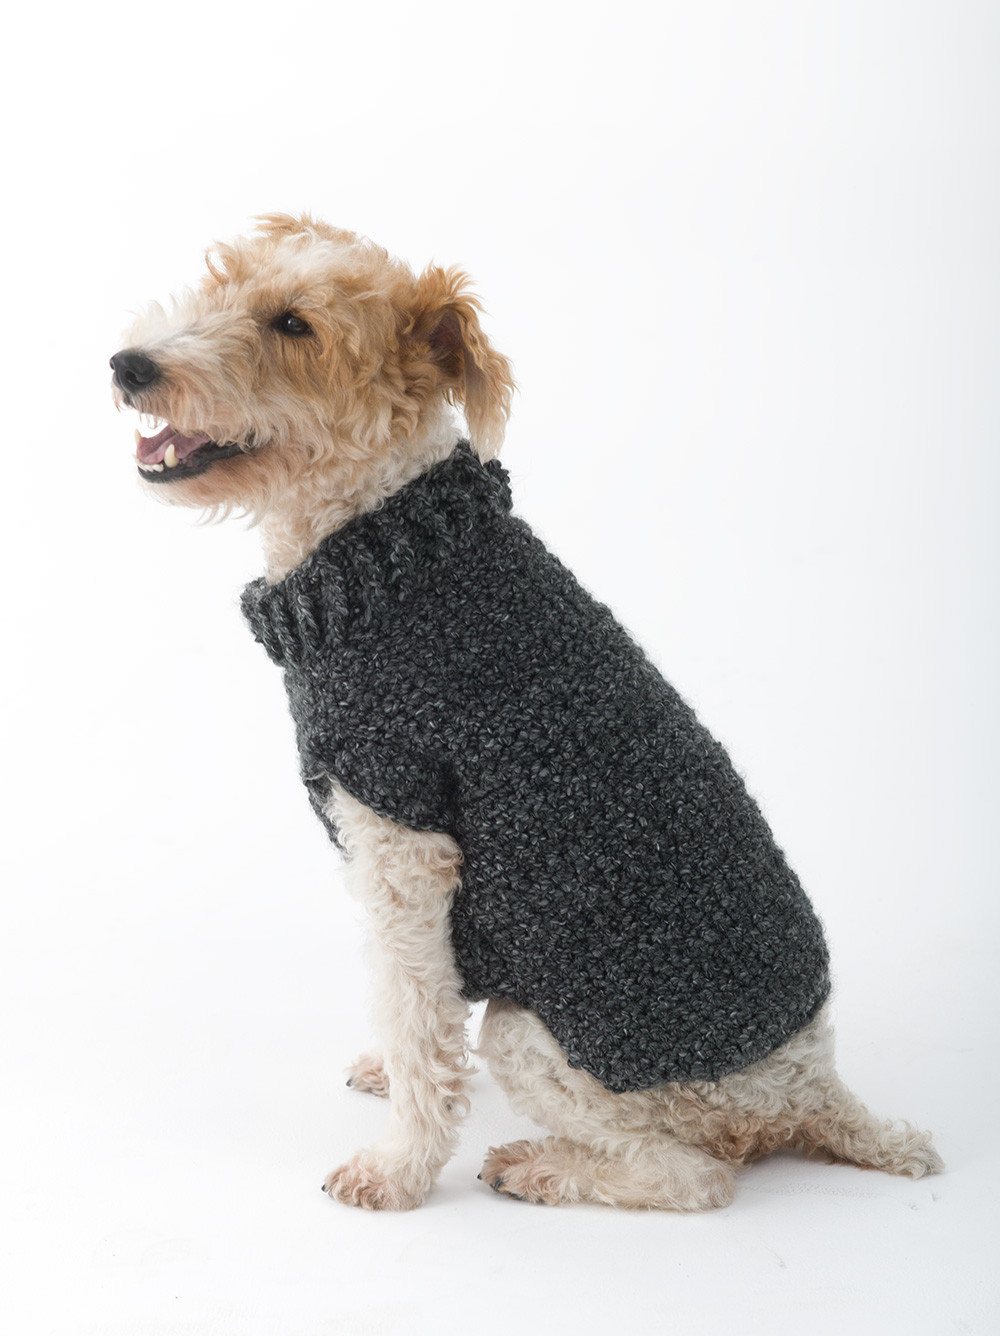 Crochet Dog Sweater with Legs Beautiful Doggie Sweaters Crochet Patterns Of Gorgeous 40 Images Crochet Dog Sweater with Legs